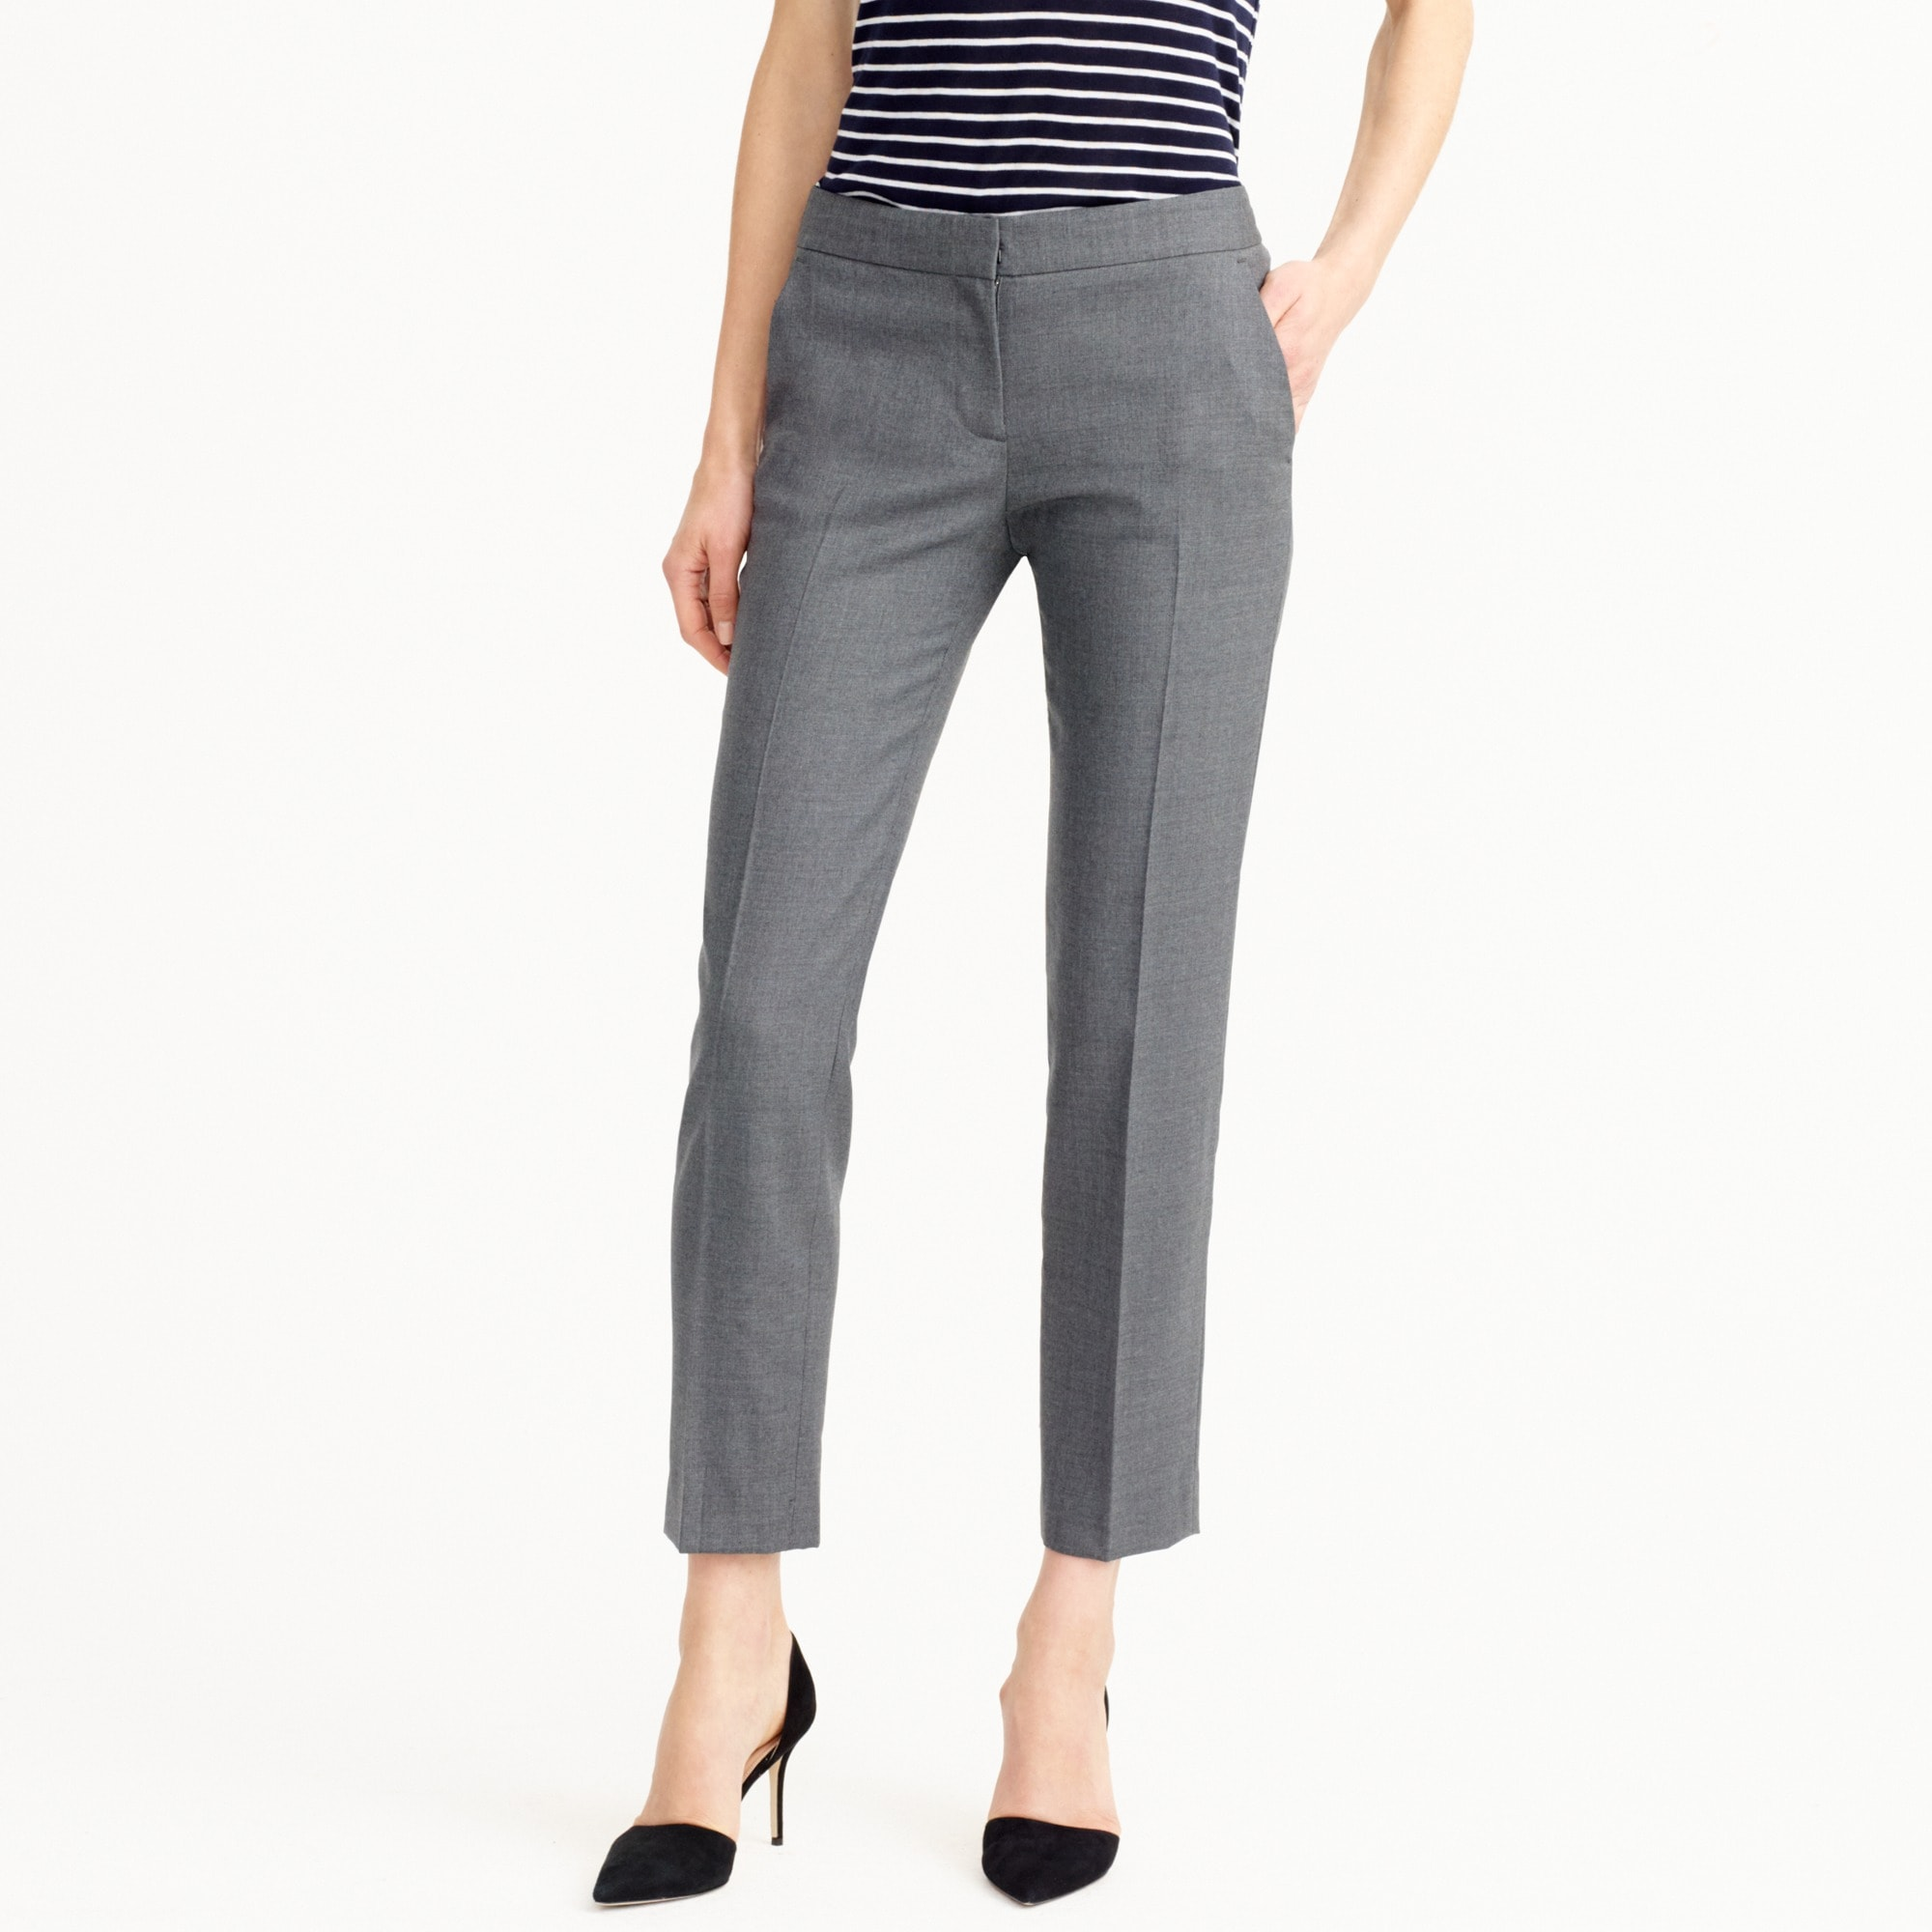 tall paley pant in italian stretch wool : women's suit pants